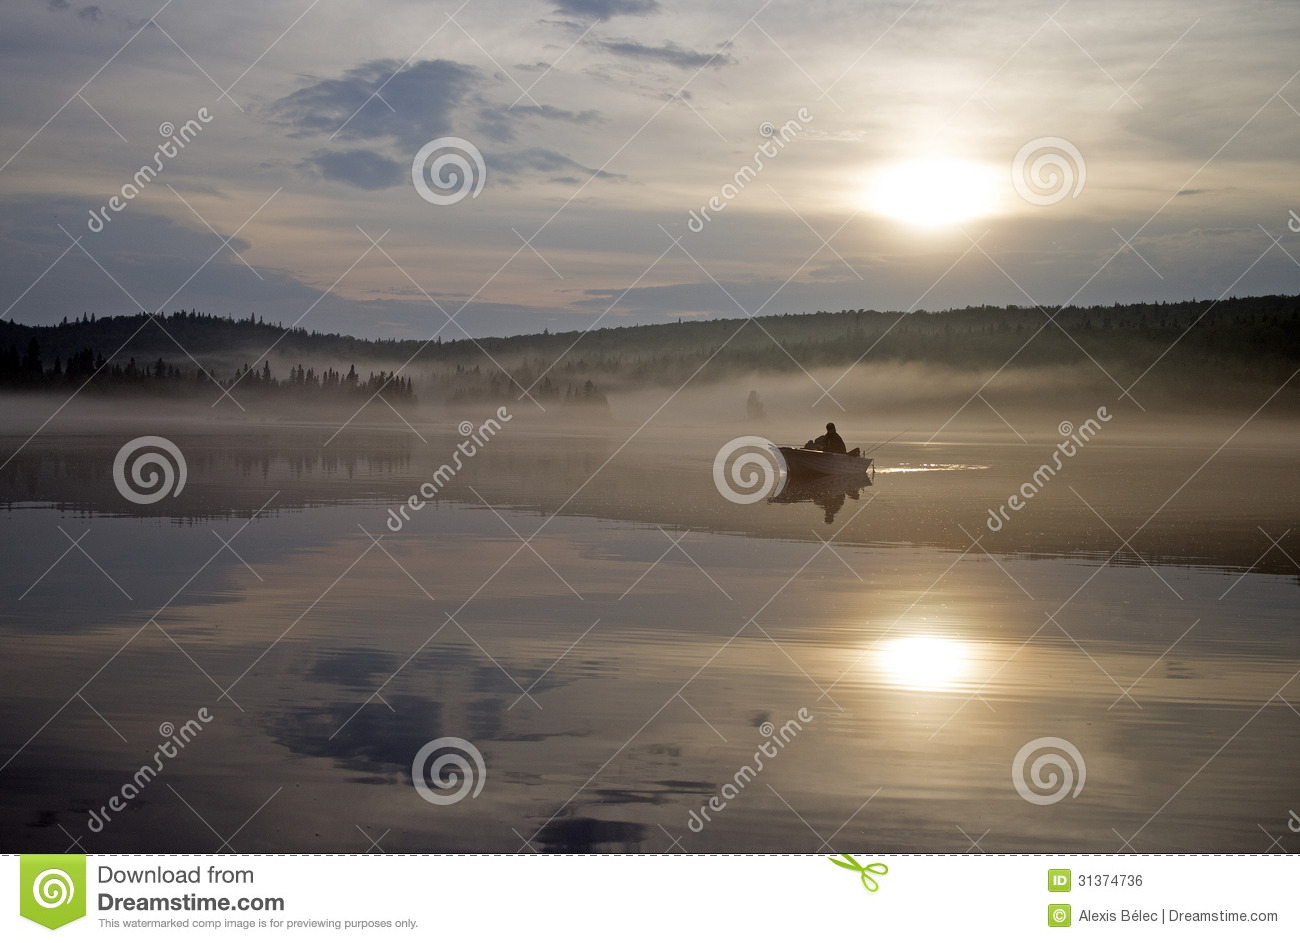 Sunset Fishing Royalty Free Stock Image - Image: 31374736